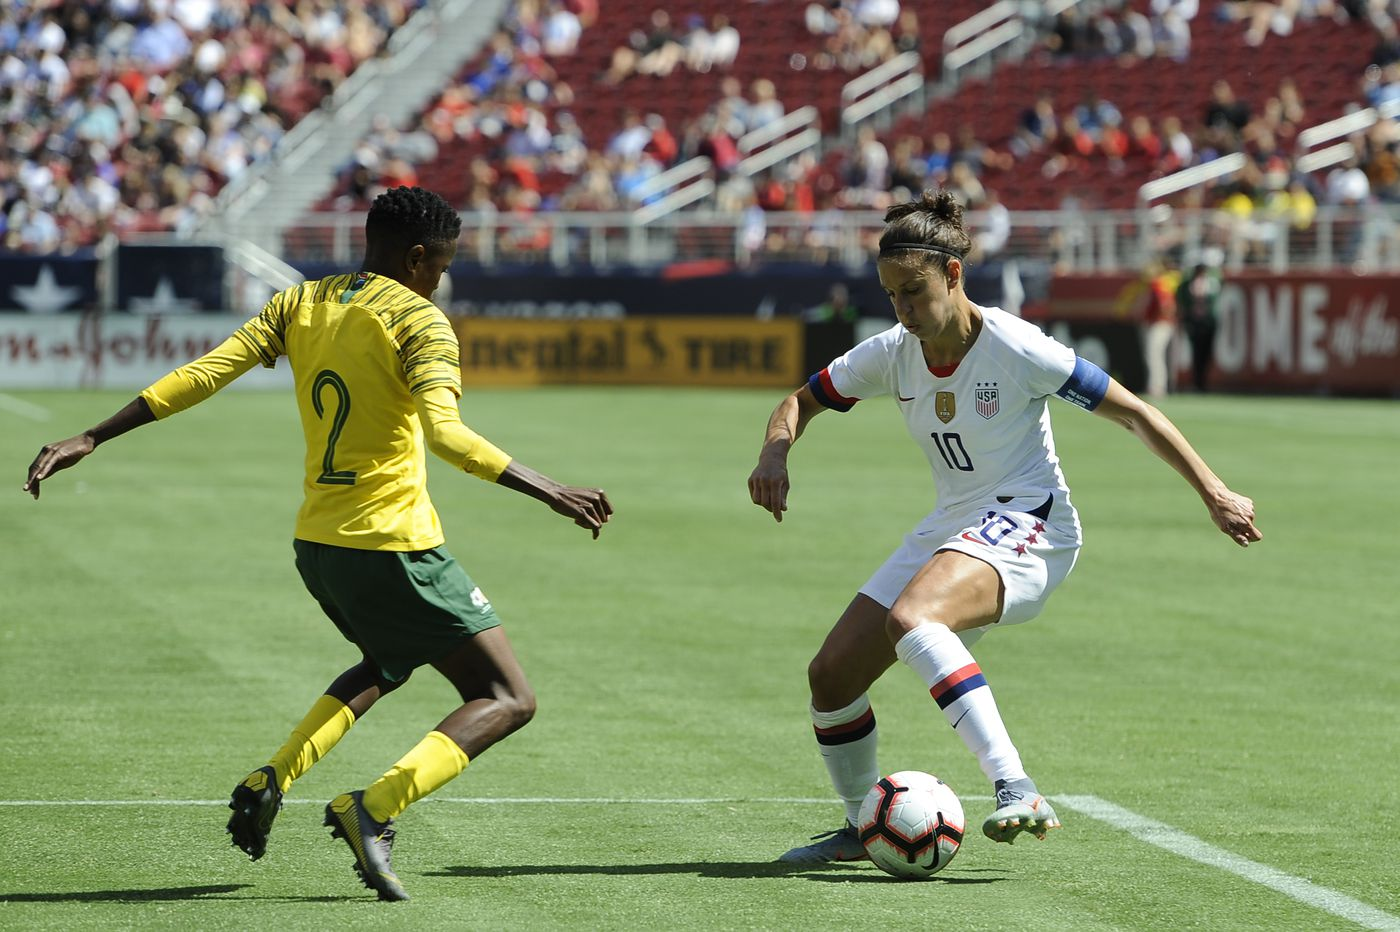 Samantha Mewis, Carli Lloyd score in USWNT's 3-0 win over South Africa in World Cup warmup